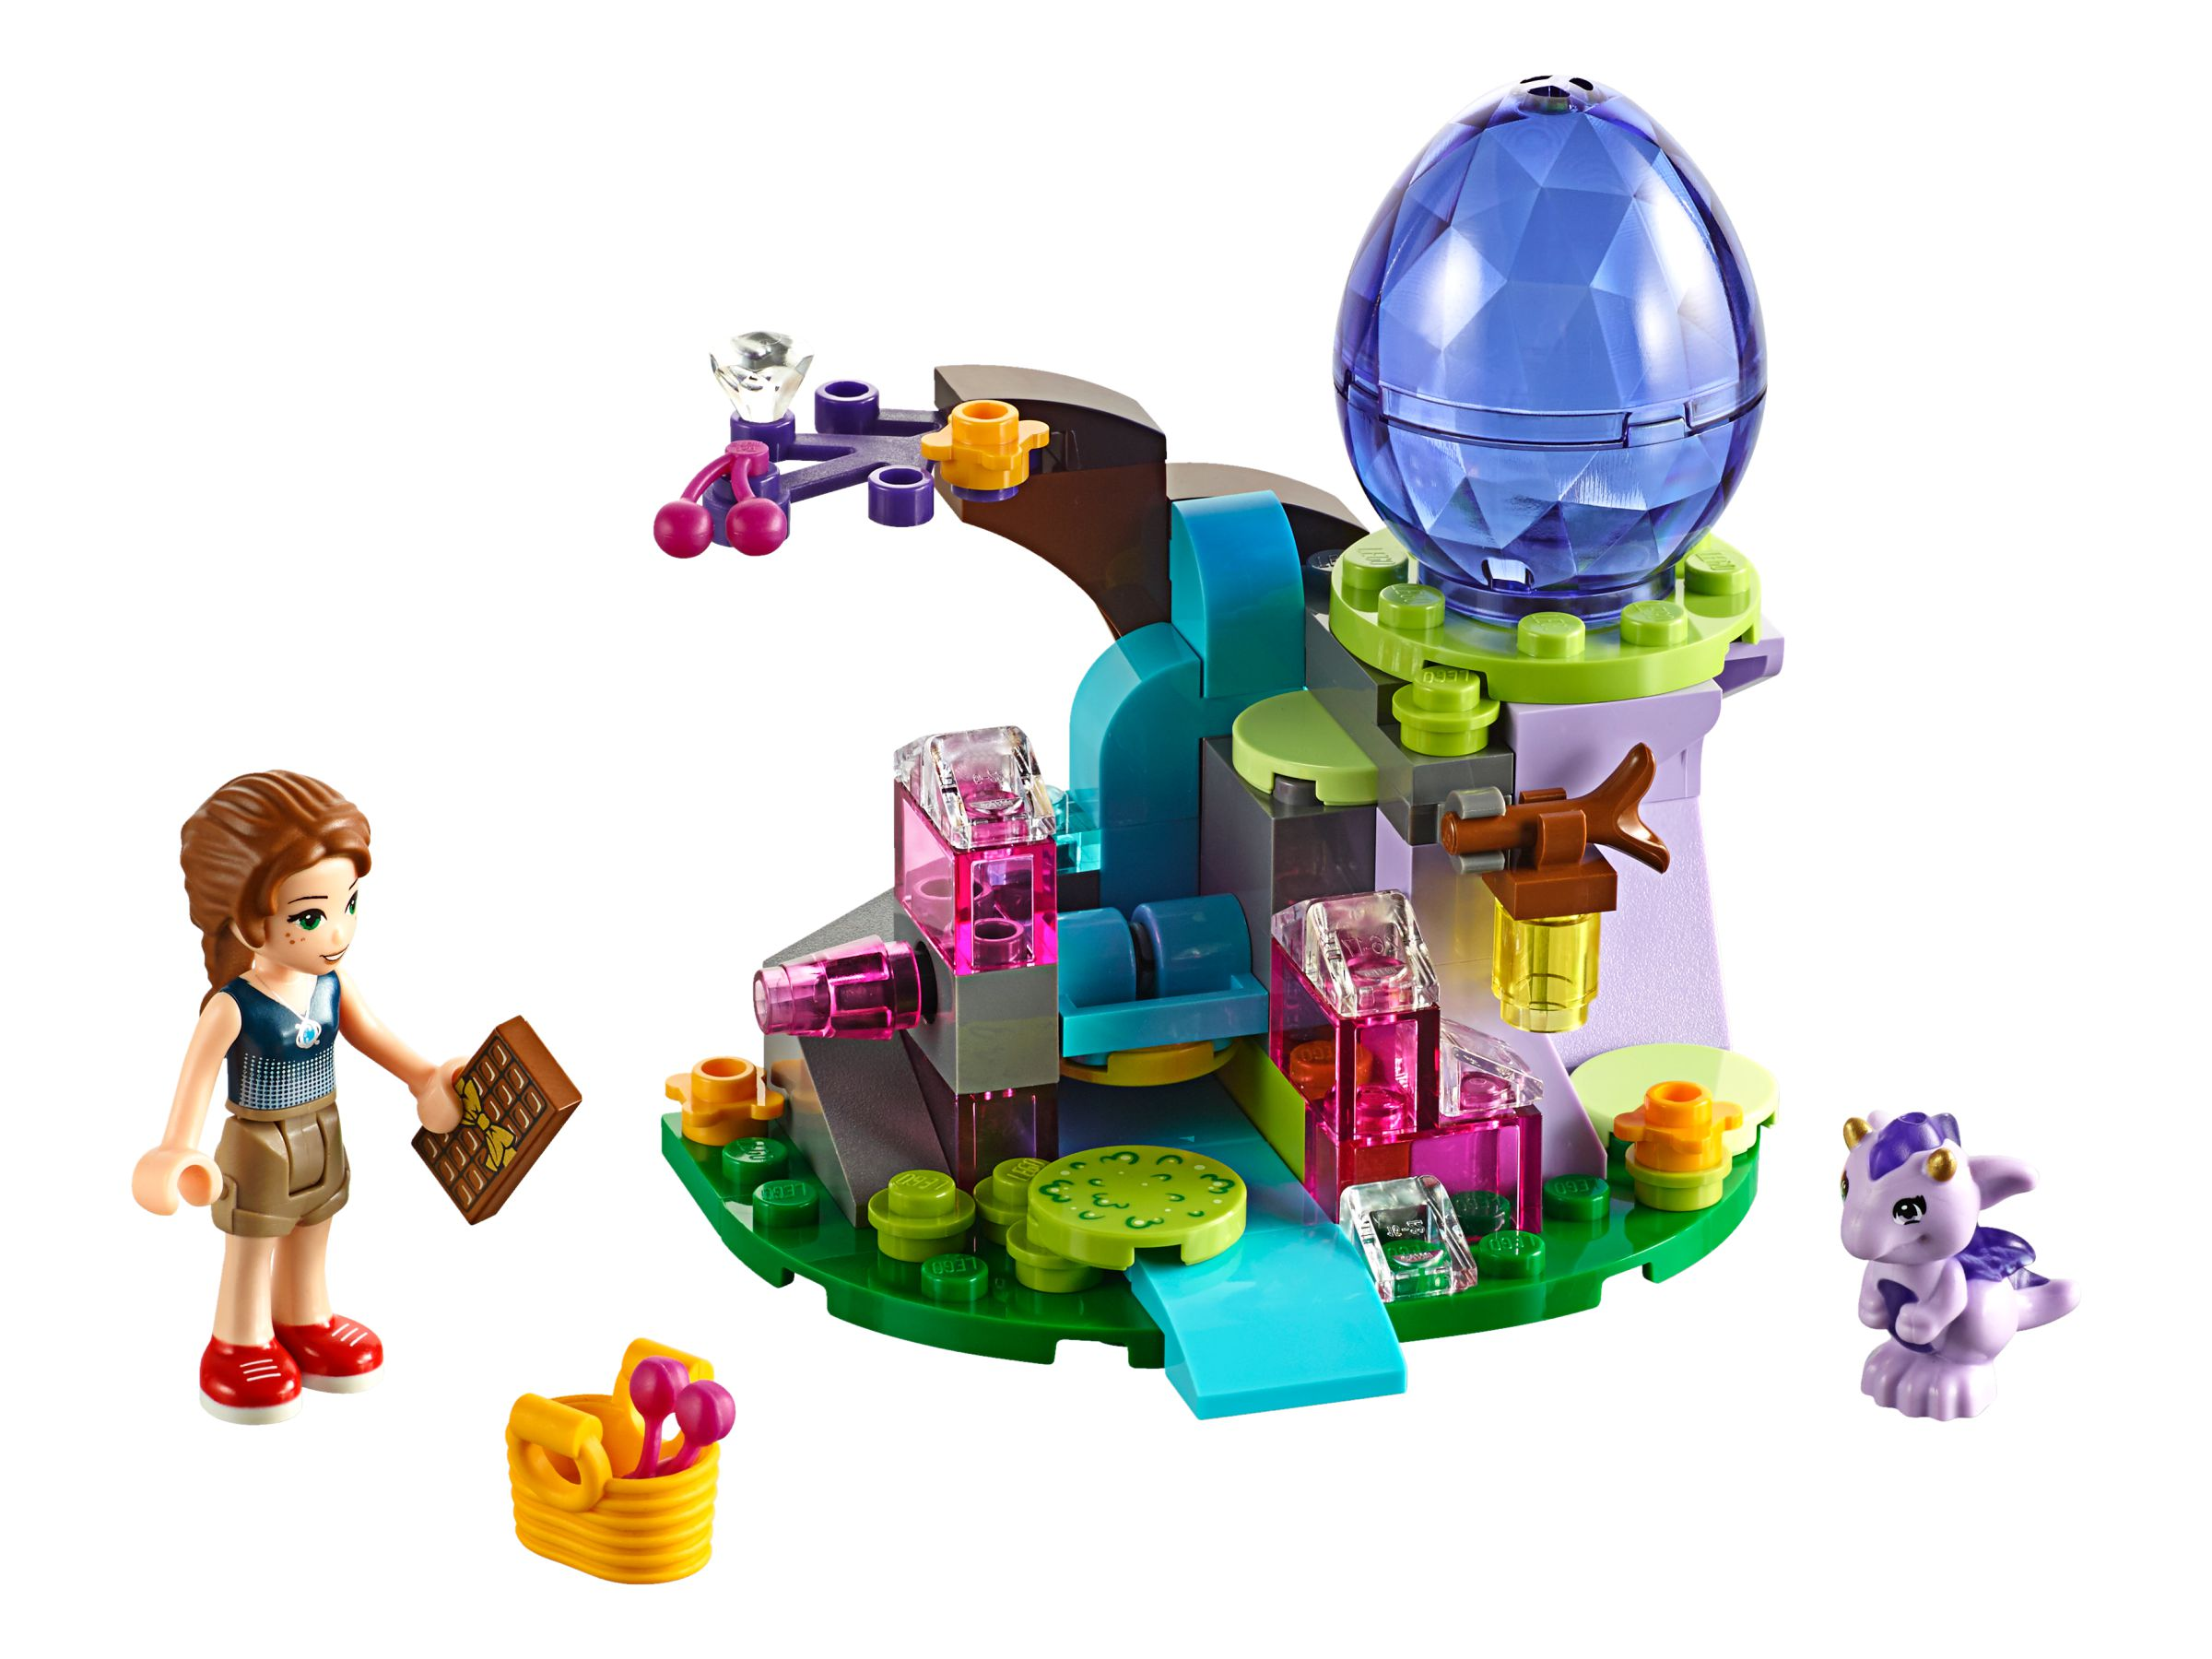 LEGO Elves 41171 Emily Jones & das Winddrachen-Baby LEGO_41171.jpg